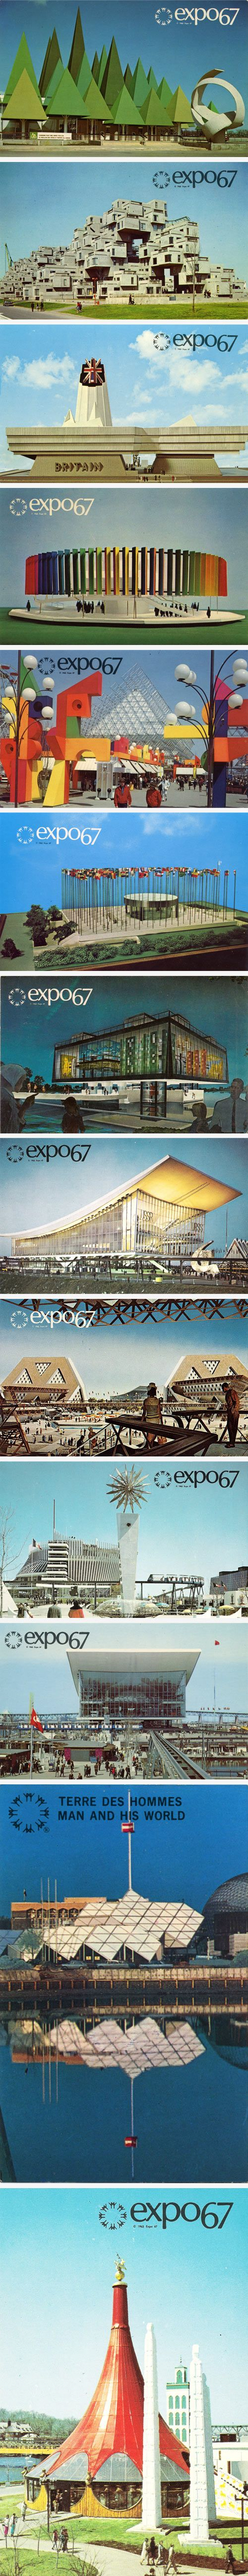 "Expo 67 was open from April to October, 1967 in Montreal, Canada.   The site consisted of two islands and a peninsula in the middle of the St. Lawrence River.   The admission ticket was referred to as a passport and entitled the holders to free entry to all pavilions as well as unlimited use of the mass transit system - Expo-Express. The passport could be filled with ""visa stamps"" at the National Pavilions.    Via: http://www.alamedainfo.com/Expo_67_Montreal.htm"